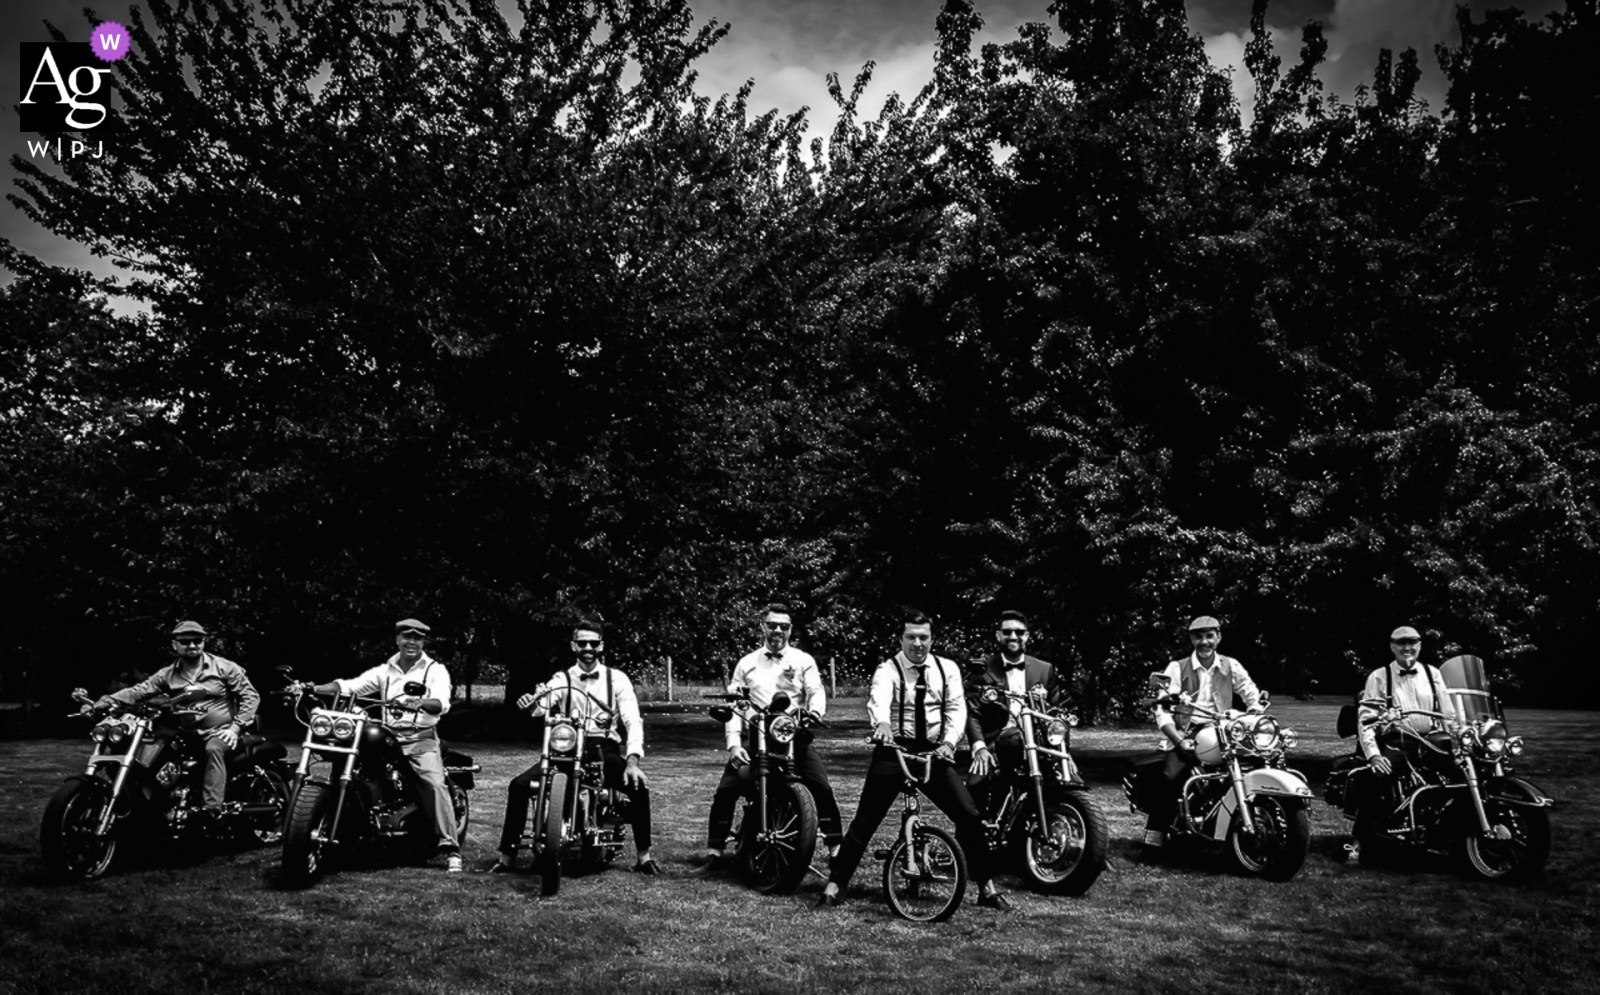 domicile des mariés fine art wedding detail pic taken of the groom and his witnesses on motorcycles before leaving for town hall